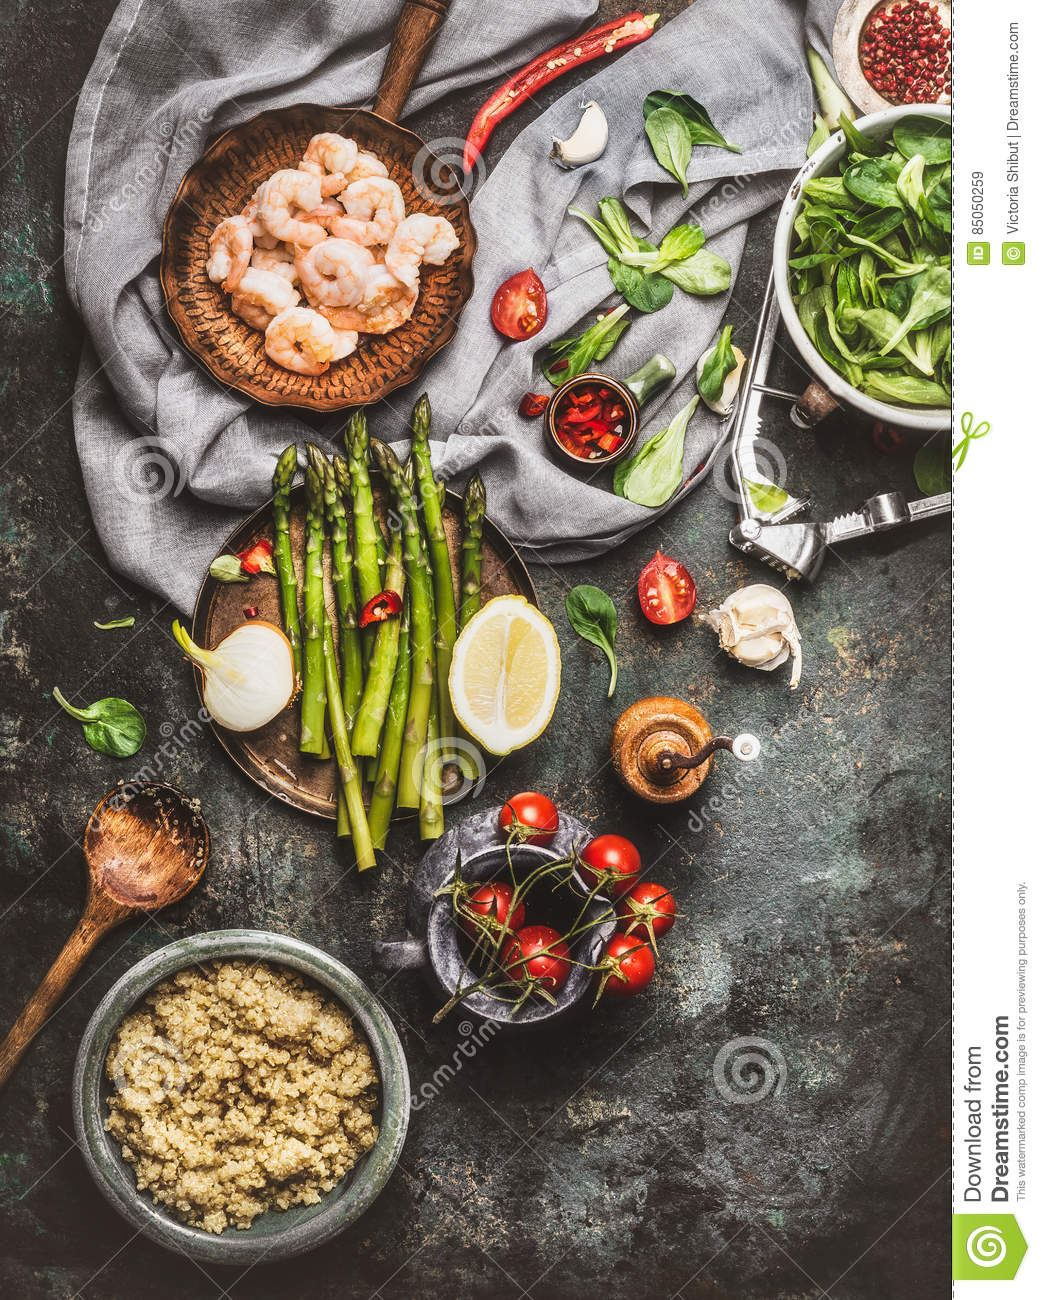 Tasty quinoa salad preparation with wooden spoon , Shrimps , asparagus and various healthy vegetables on rustic kitchen table bac